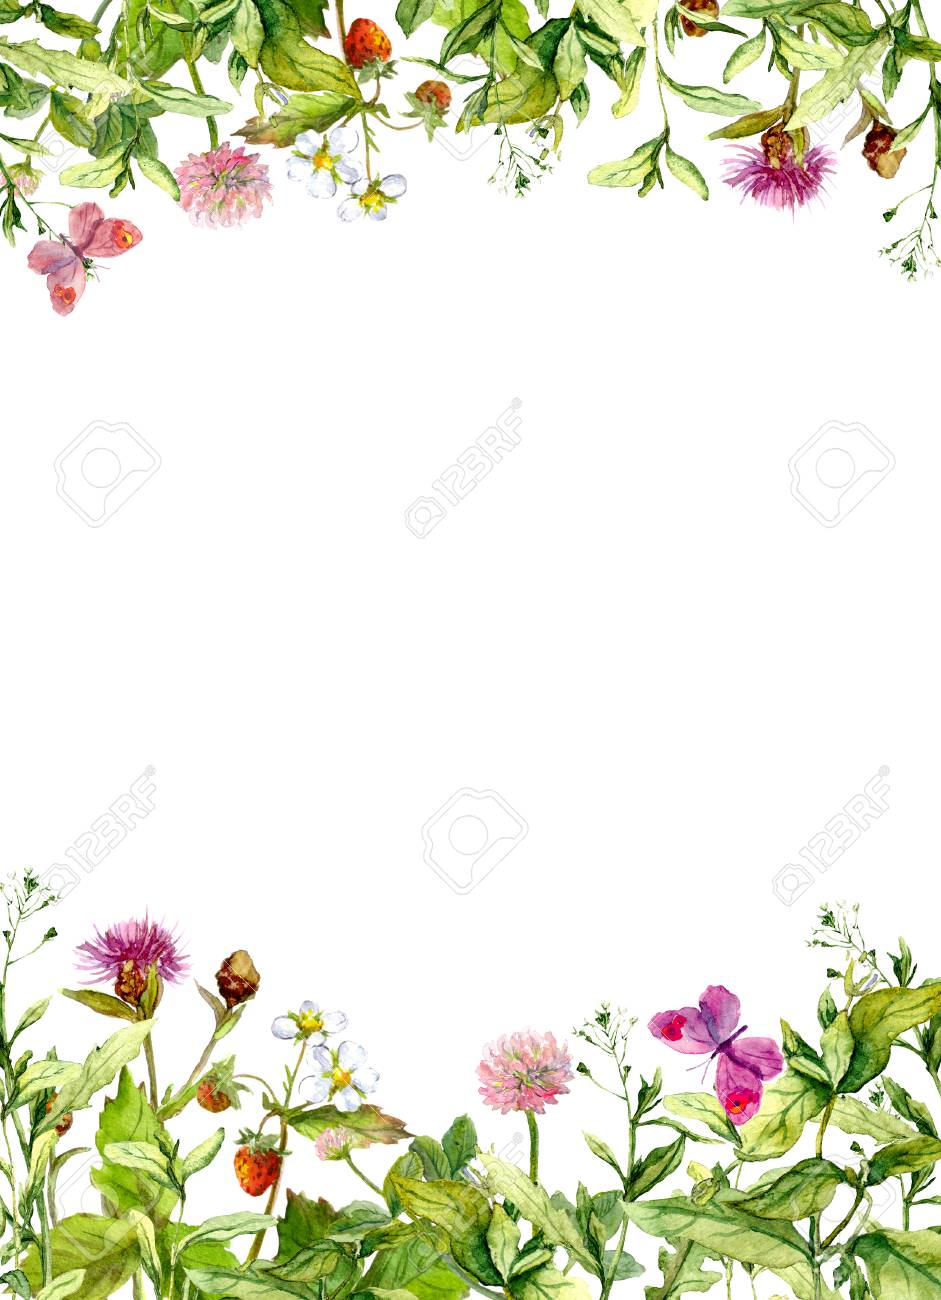 Spring Flowers Meadow Grass Butterflies Vintage Floral Border